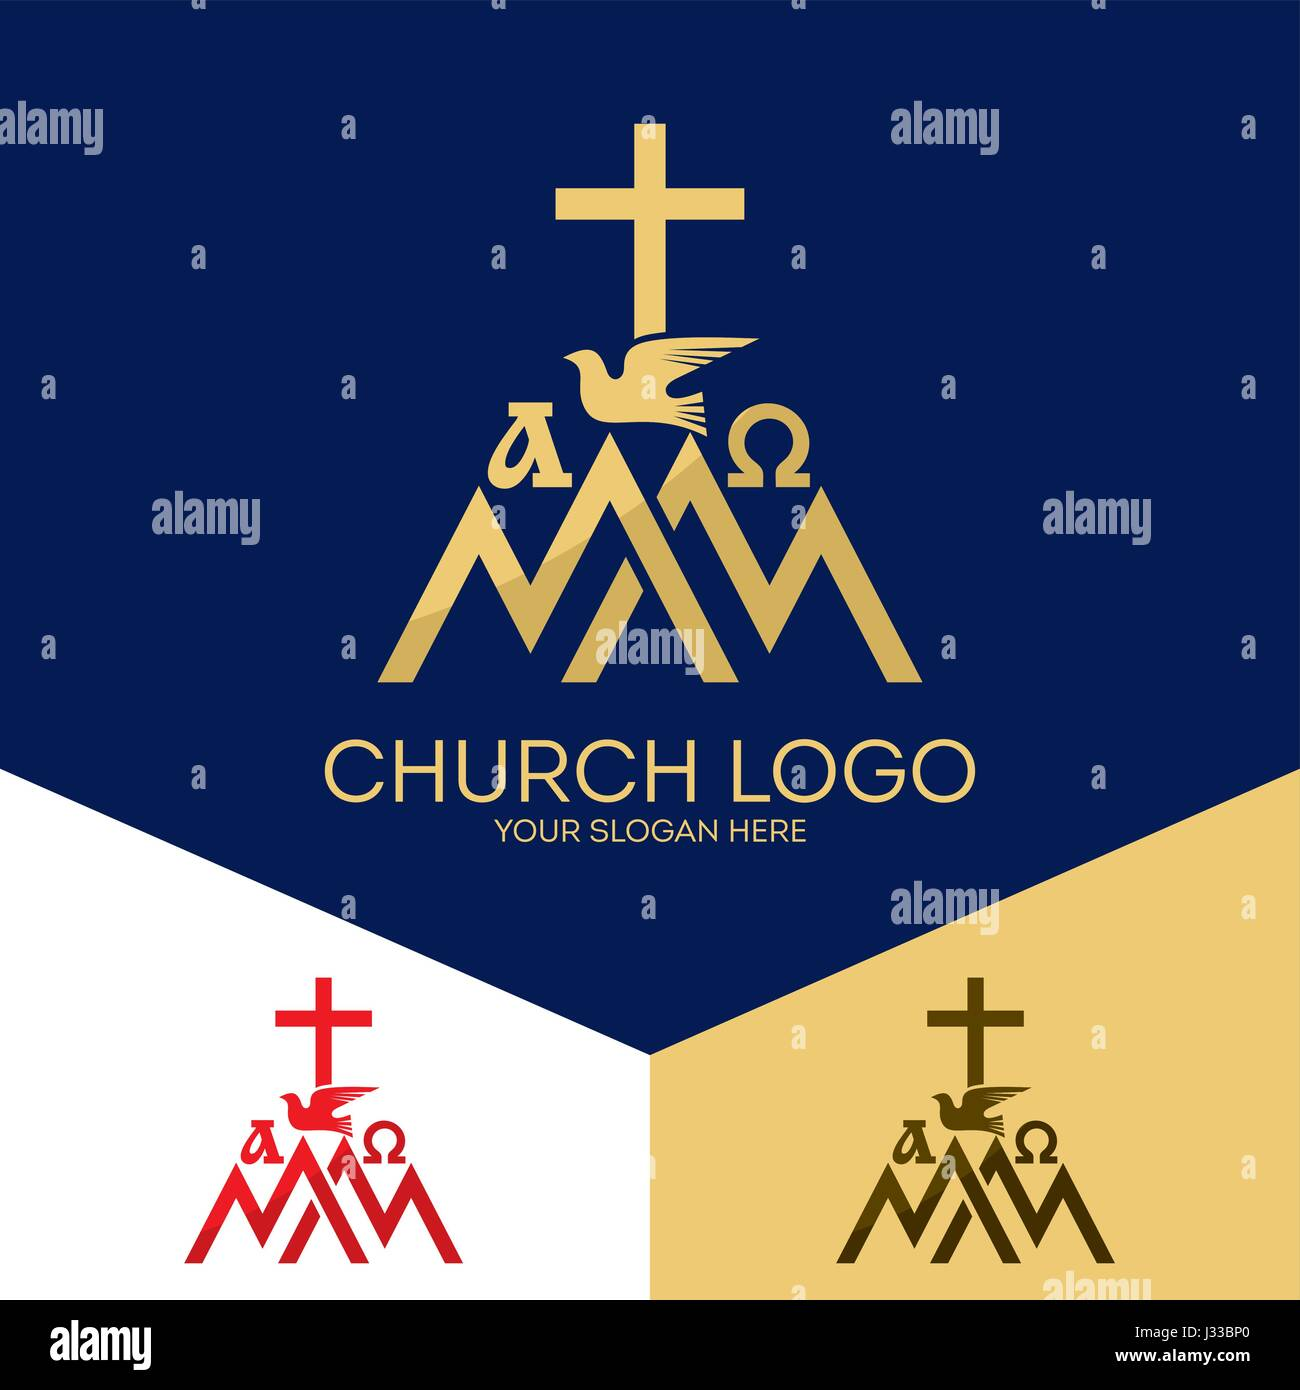 Church logo christian symbols mount zion the alpha and omega church logo christian symbols mount zion the alpha and omega the cross of jesus christ buycottarizona